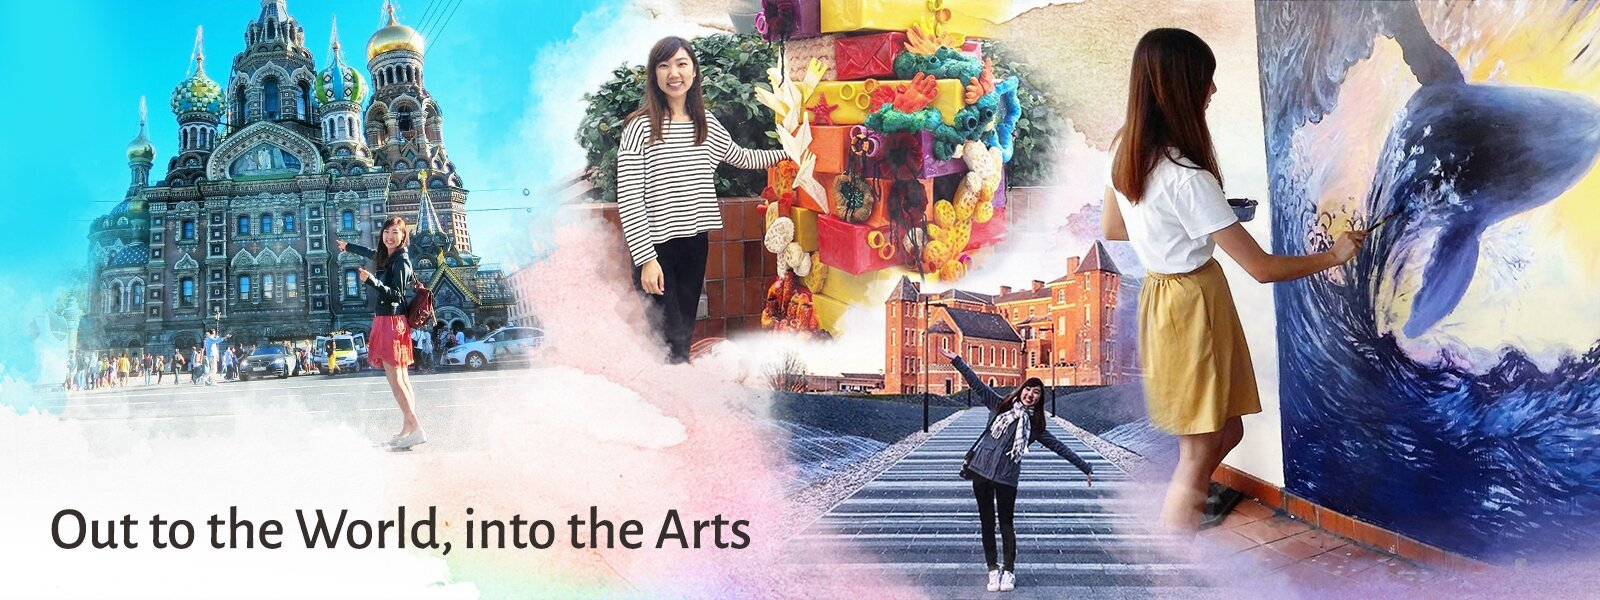 Out to the World, into the Arts